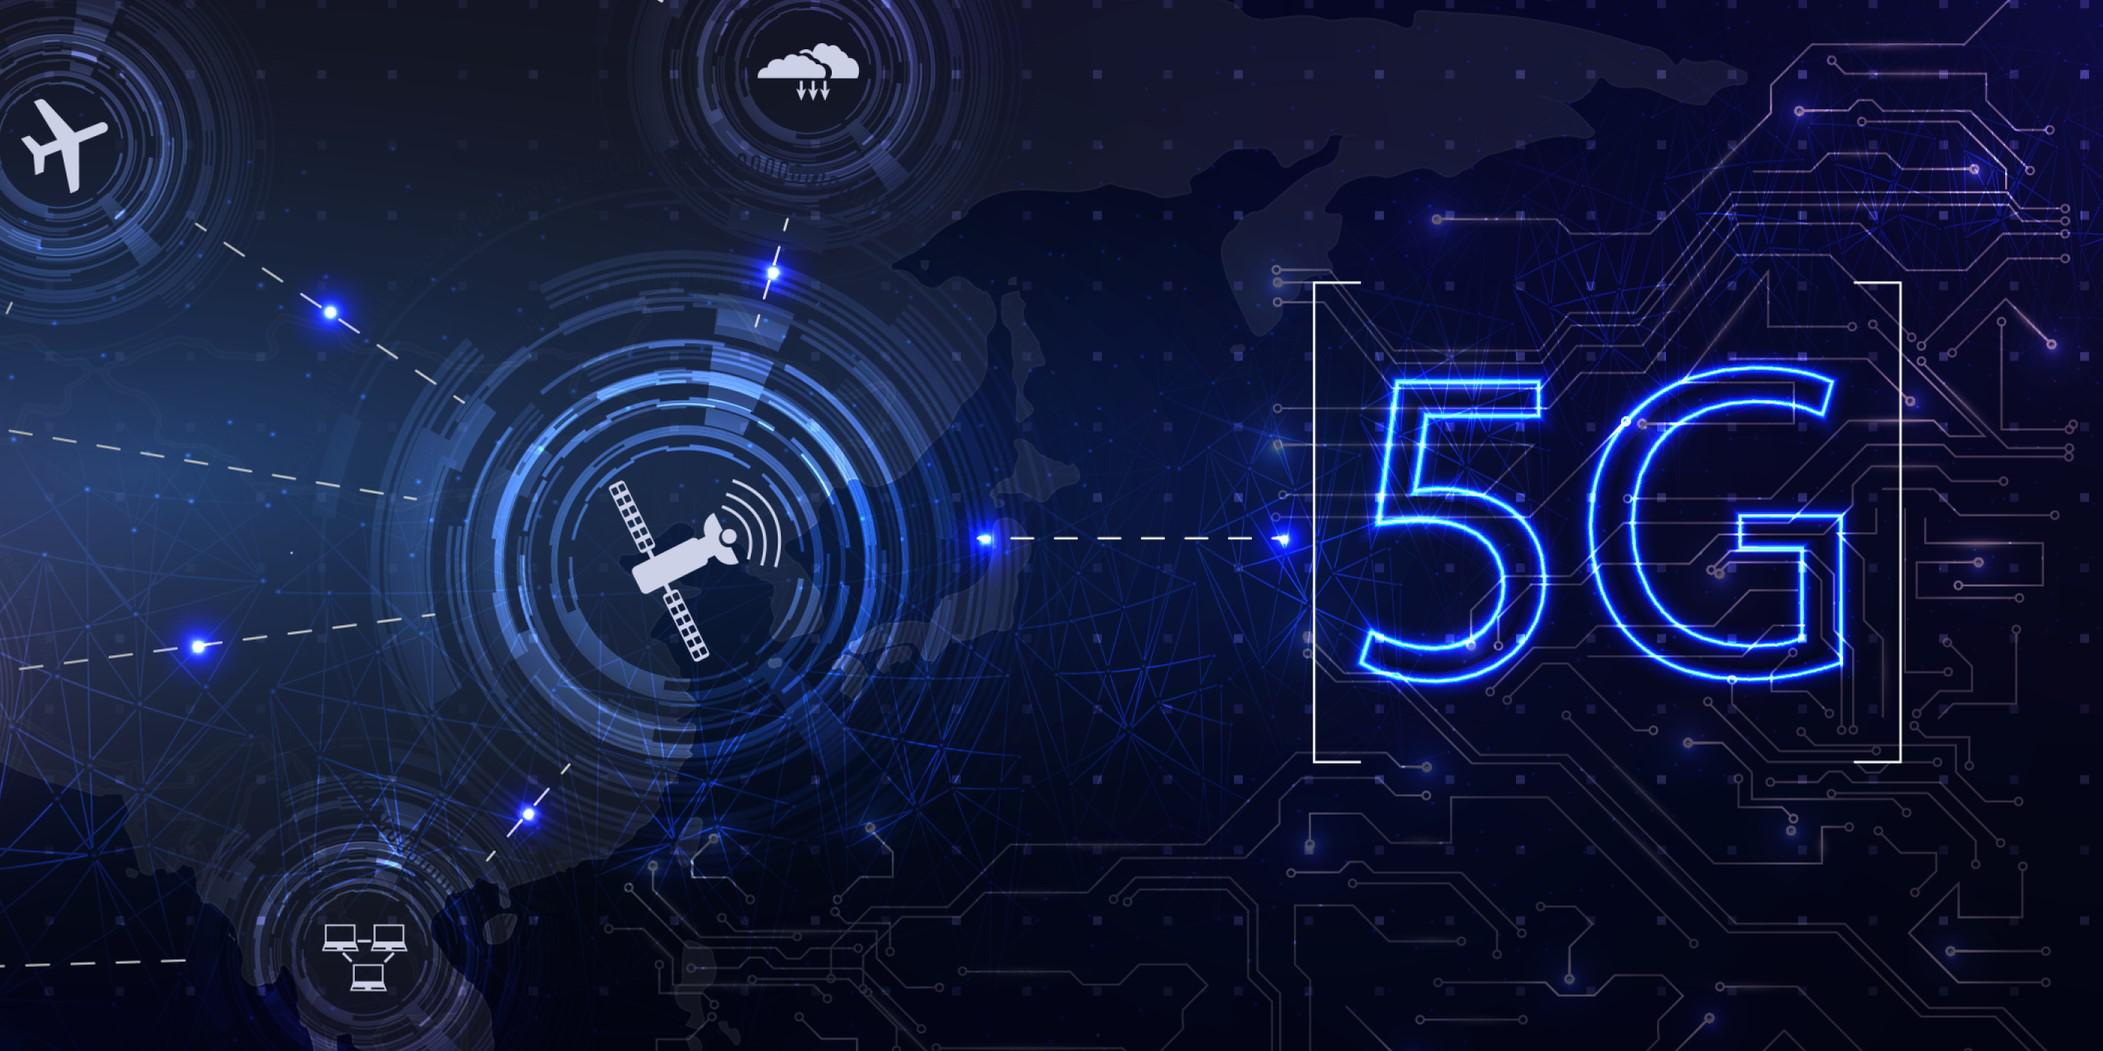 The DARPA OPS-5G program has set some ambitious goals, including adoption of the technology by a mobile carrier near a military base and machine translation of open source standards. Credit: ZinetroN/Shutterstock